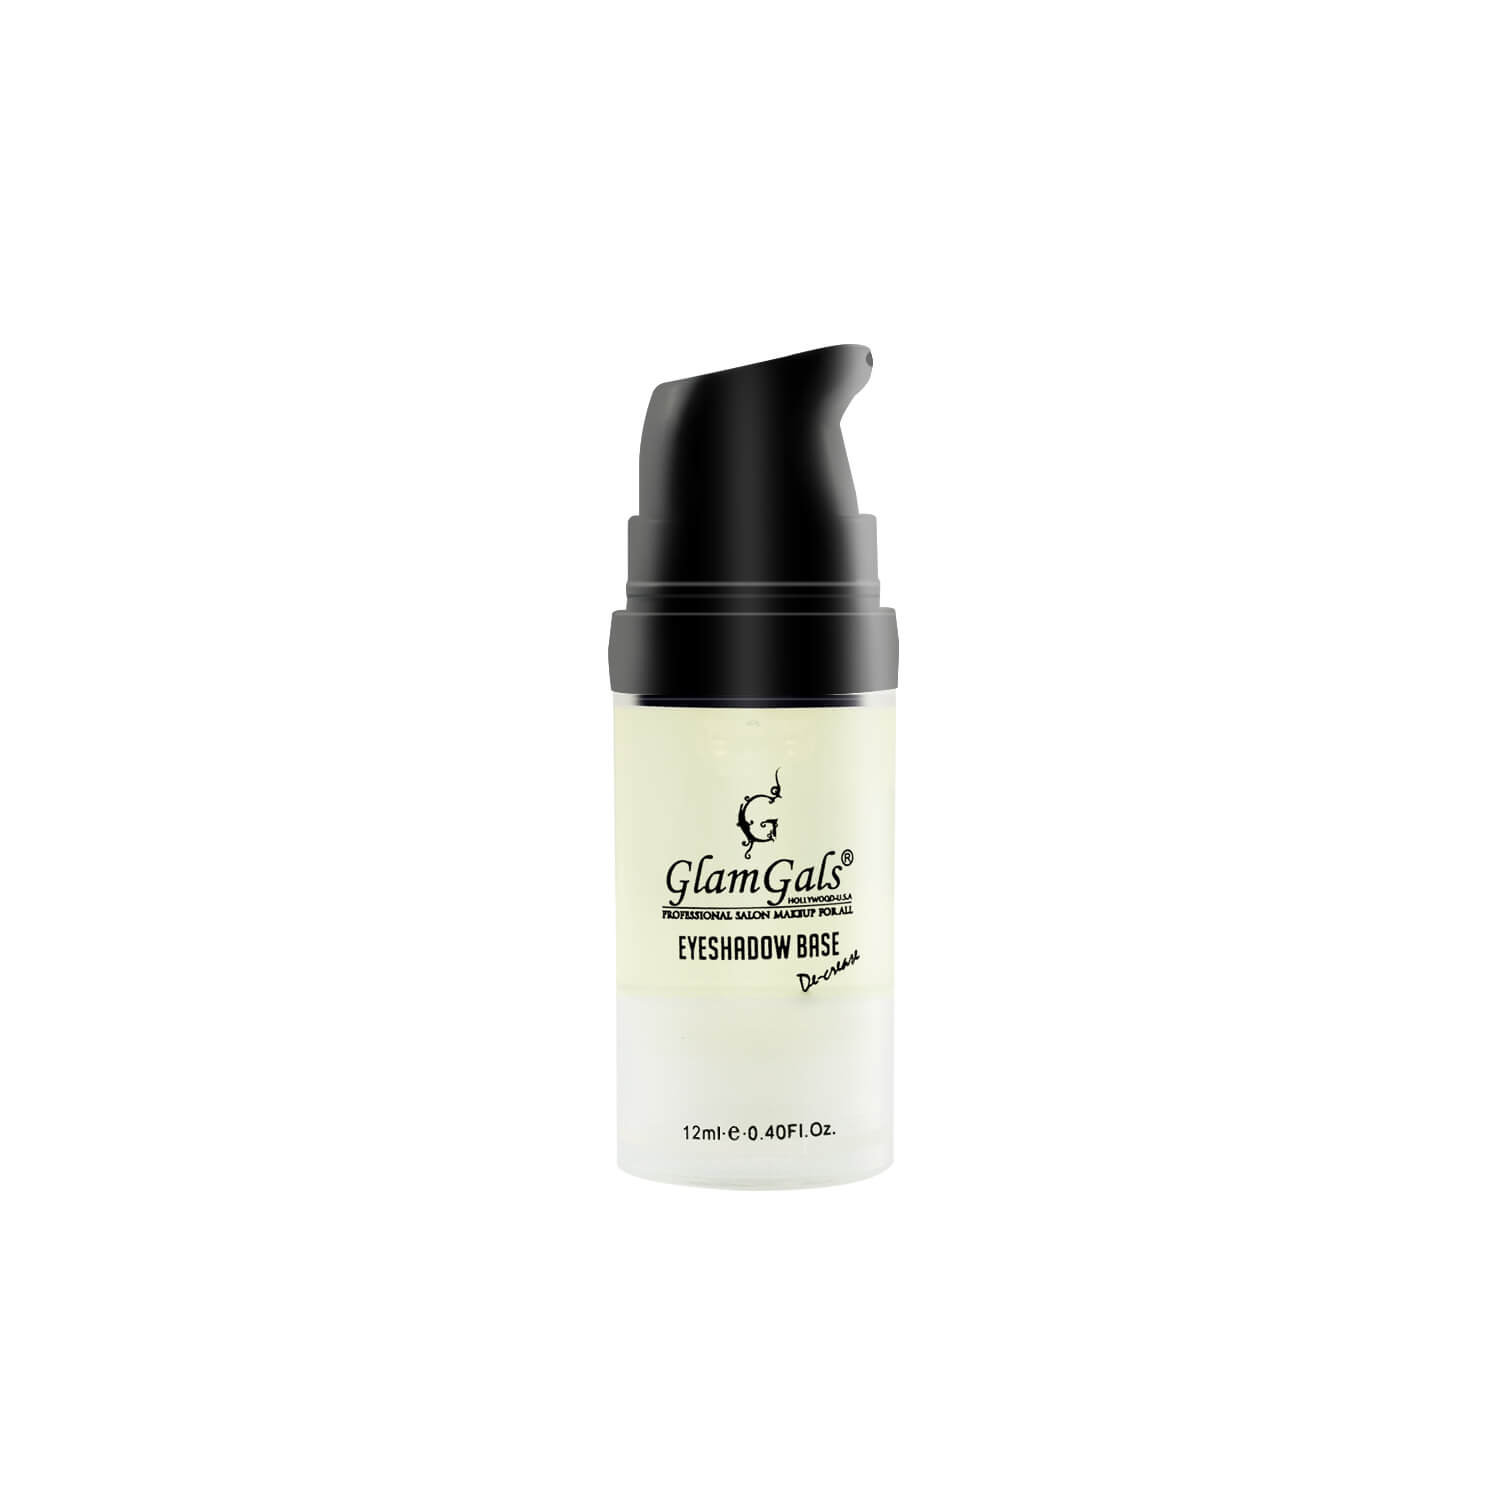 GlamGals Eyeshadow Base Gel 12 ml